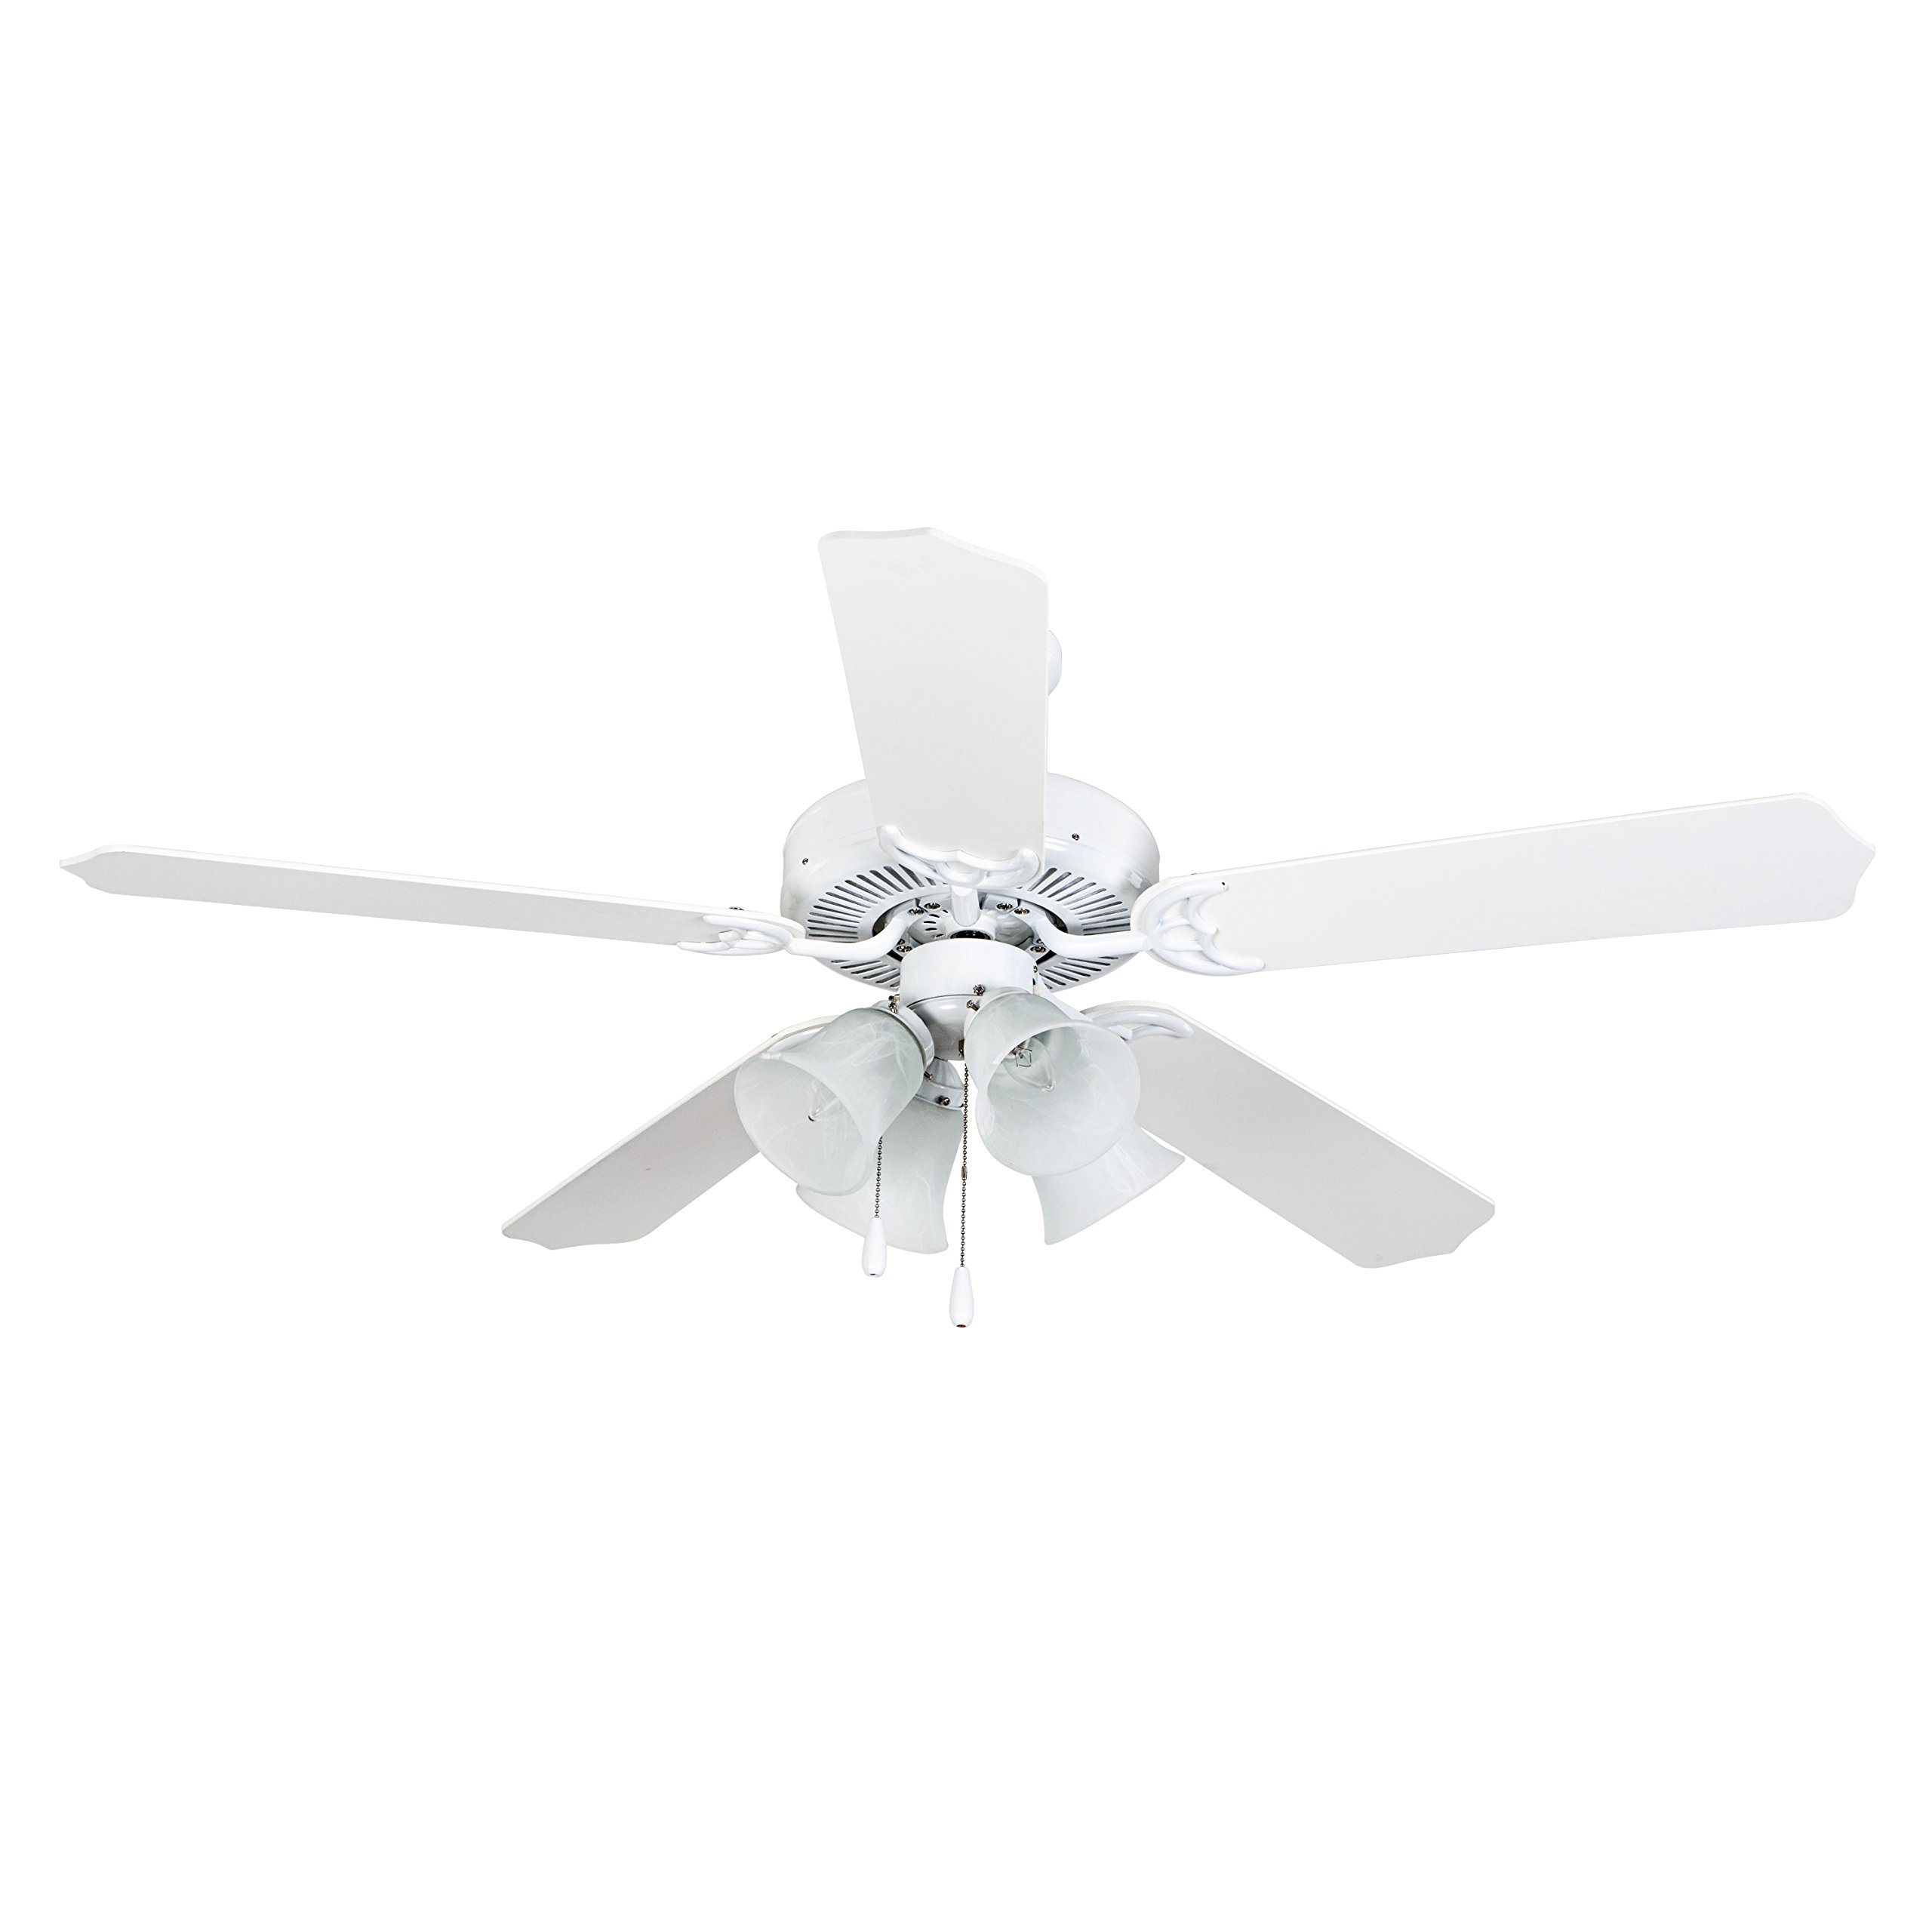 Yosemite Home Décor WESTFIELD-WH-4 Westfield Collection 52'' Indoor Ceiling Fan, White Finish